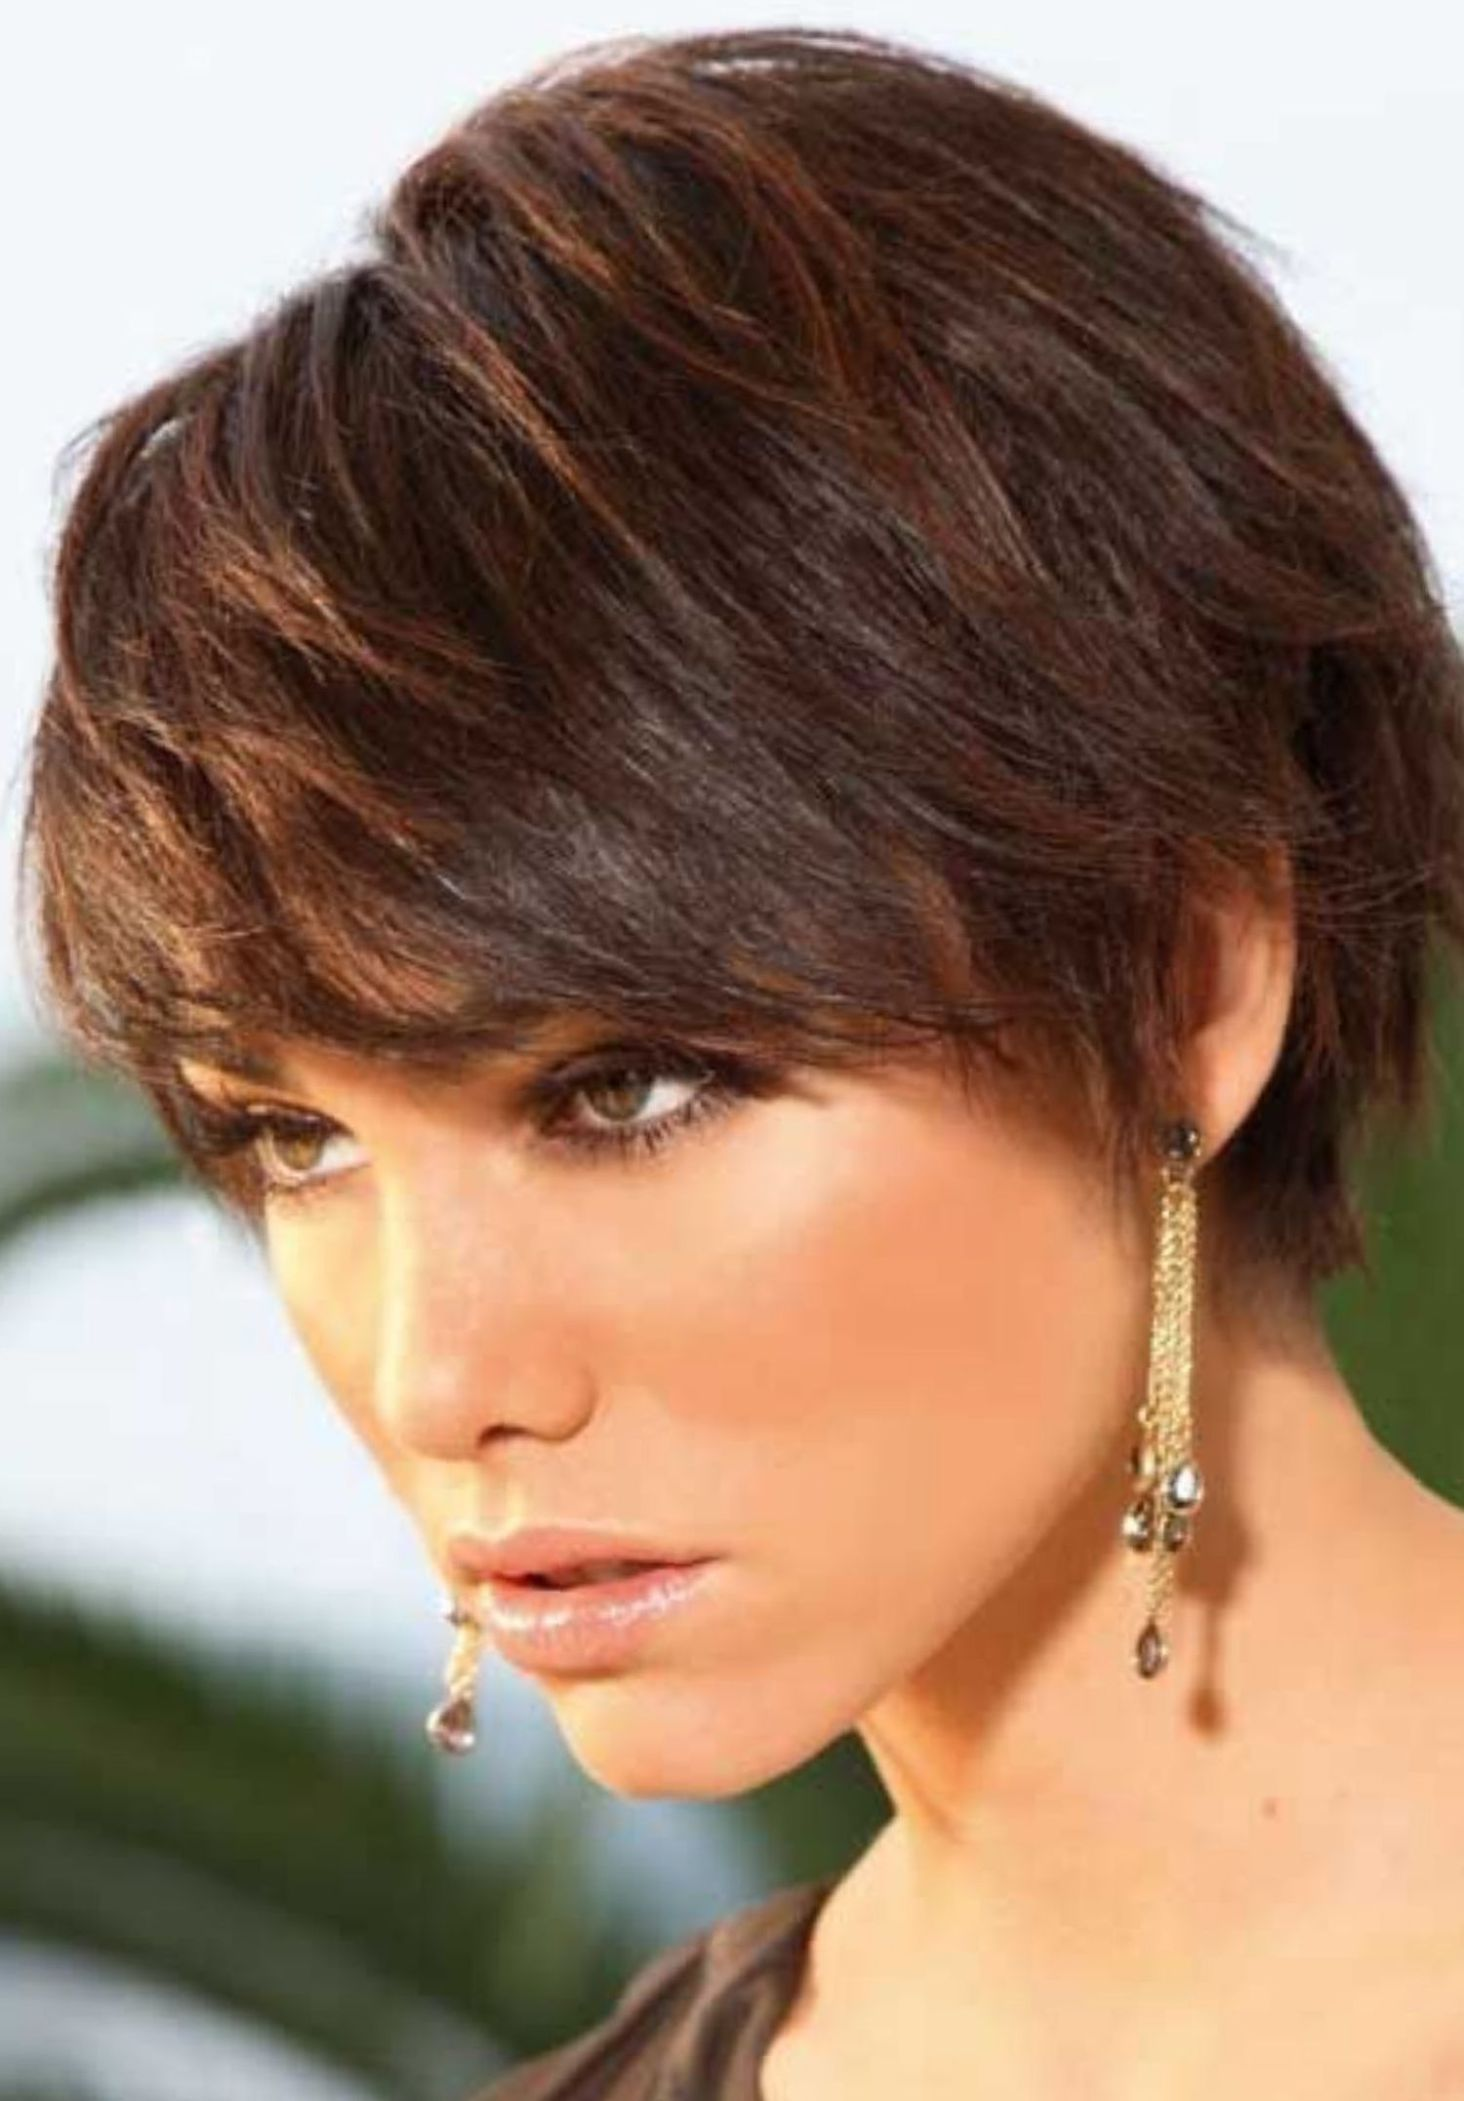 Medium haircuts for men with thick hair  classy short haircuts and hairstyles for thick hair in